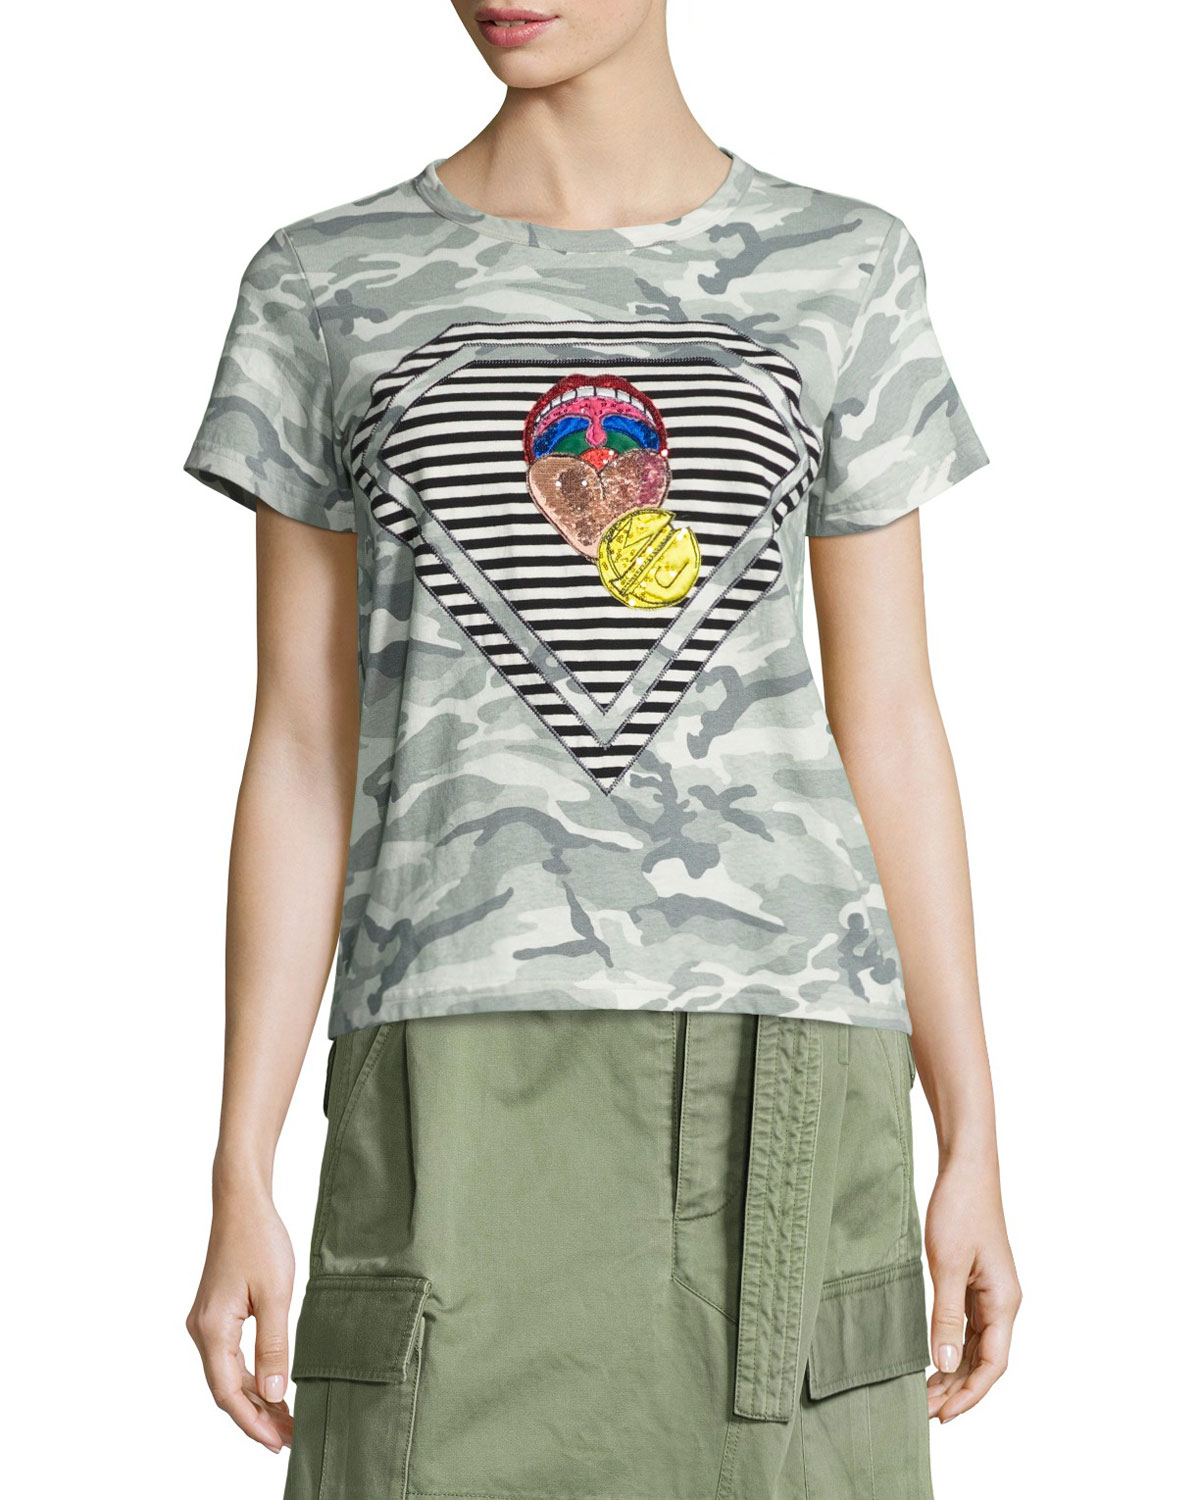 Mouth Camouflage-Print Tee, Gray/Multi